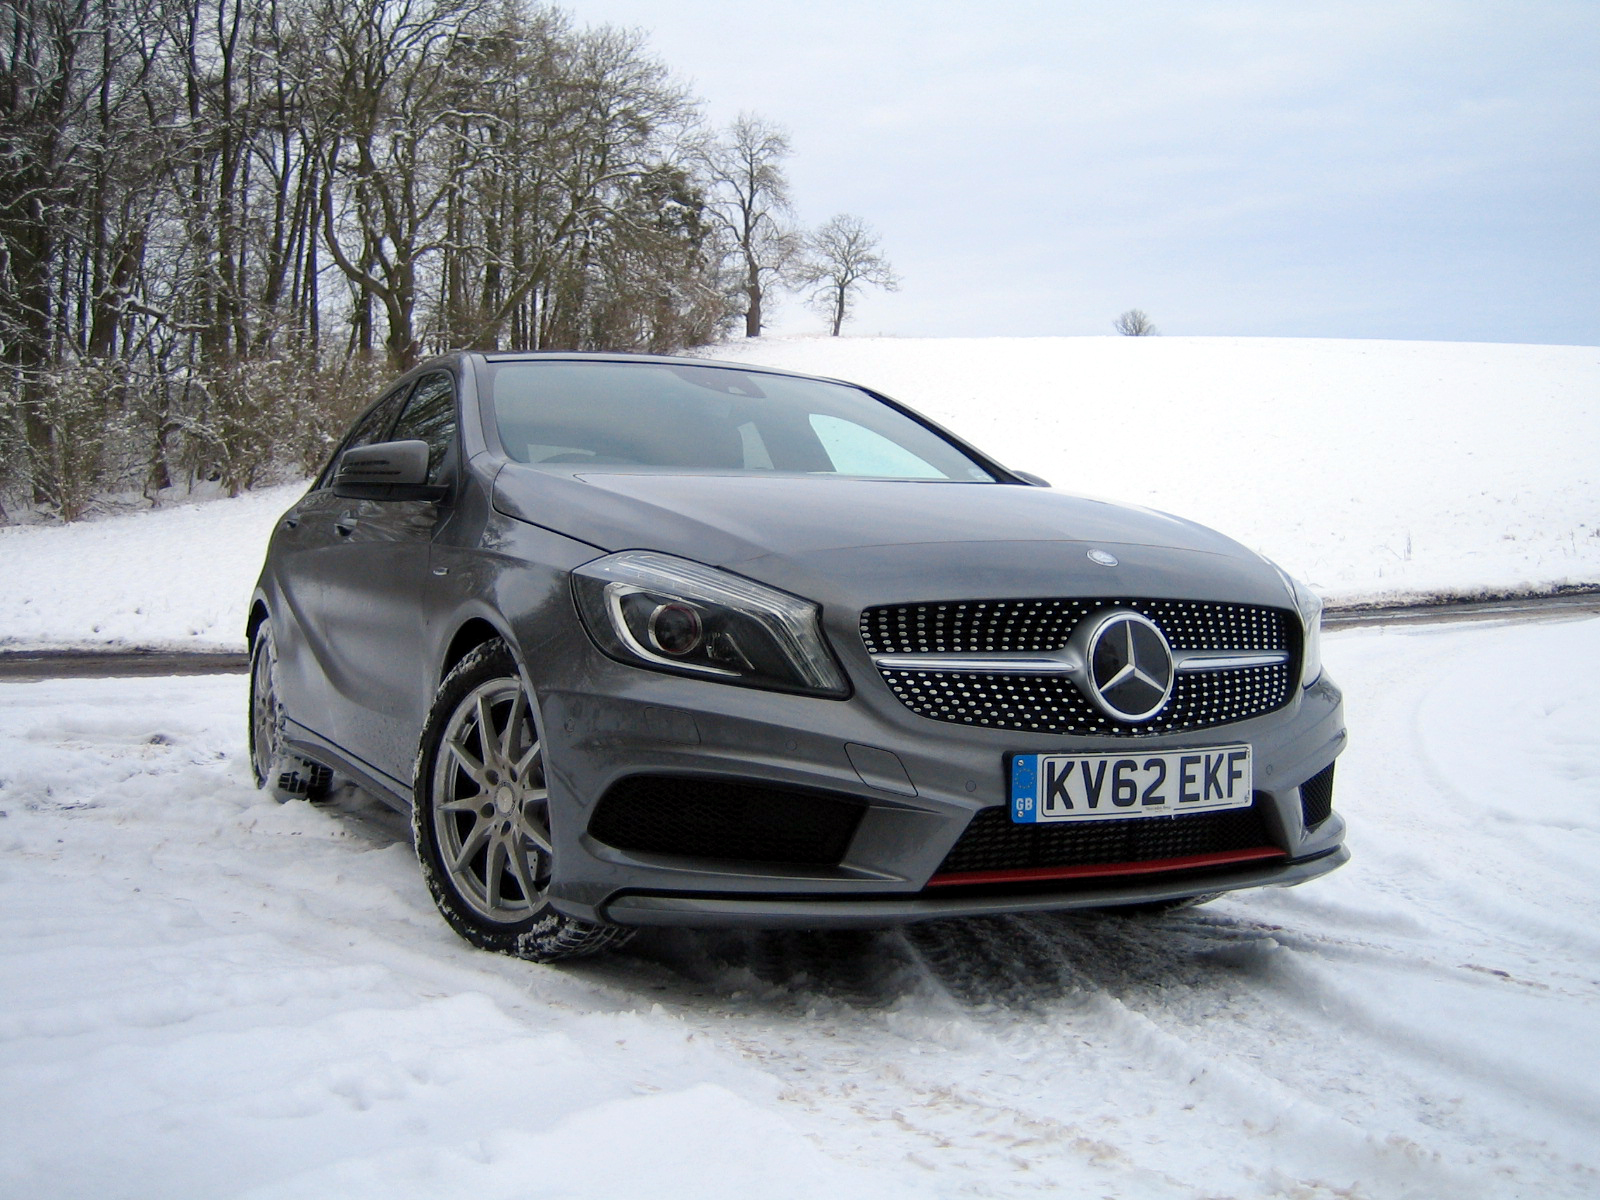 Mercedes benz a250 engineered by amg 003 wheel world reviews for Mercedes benz tyres